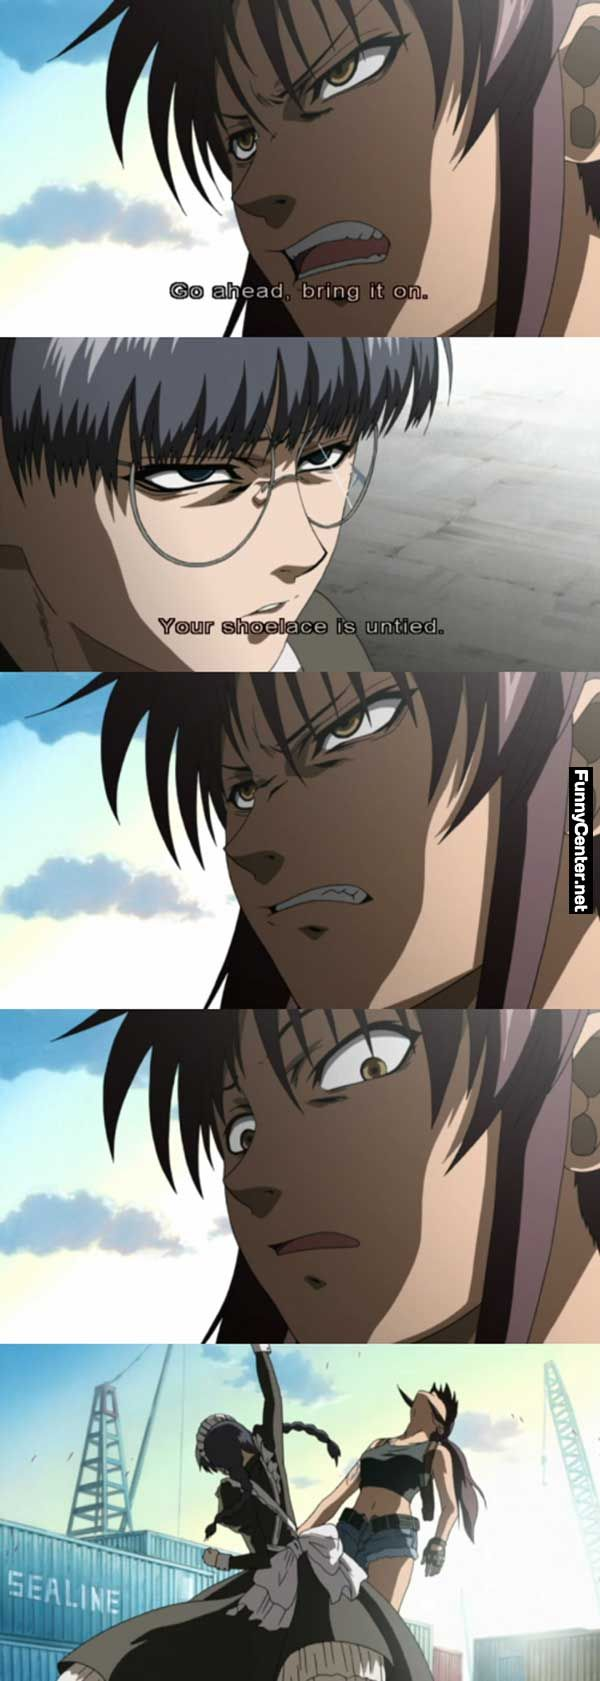 06c643d38c5d05f228613914f03f4c37 funniest memes funny memes cheap trick but it works anime black lagoon fun unlimited,Black Funny Memes To Download Now